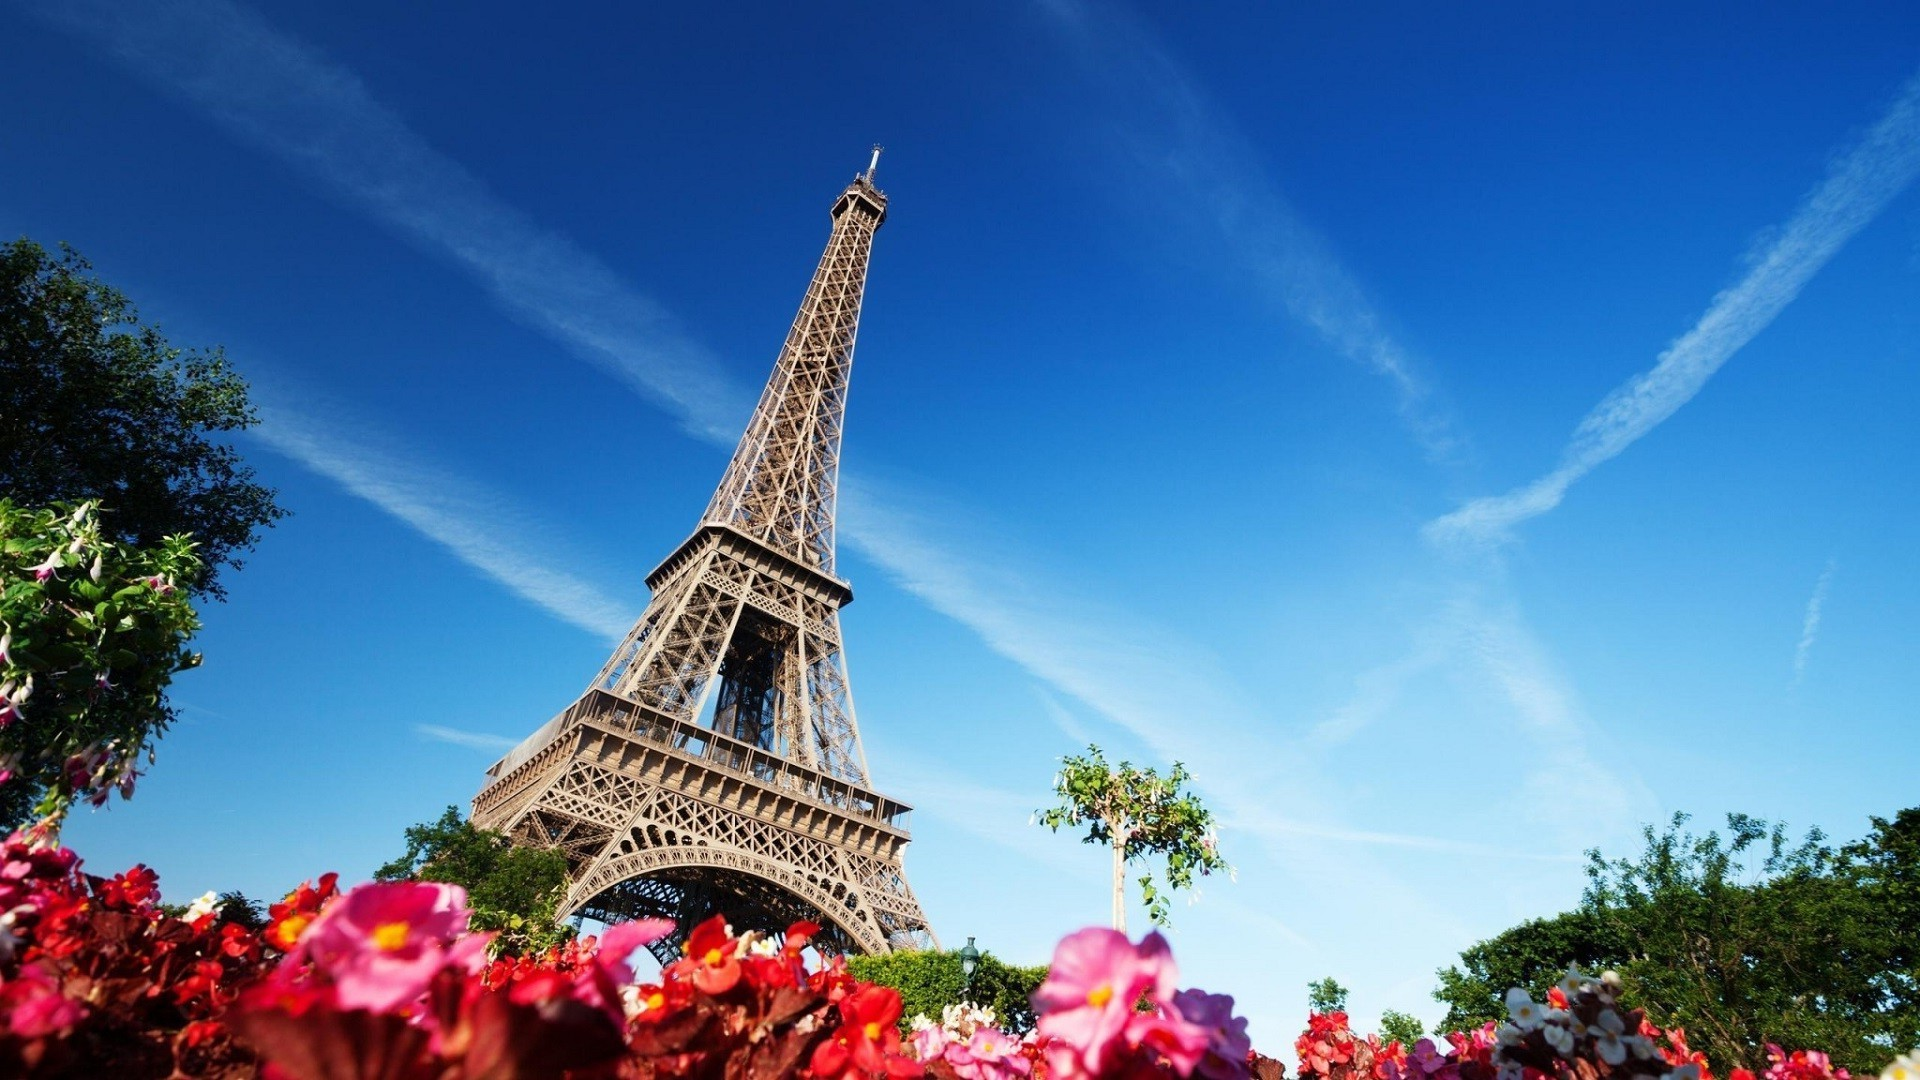 Eiffel tower desktop wallpaper wallpapertag - Paris eiffel tower desktop wallpaper ...